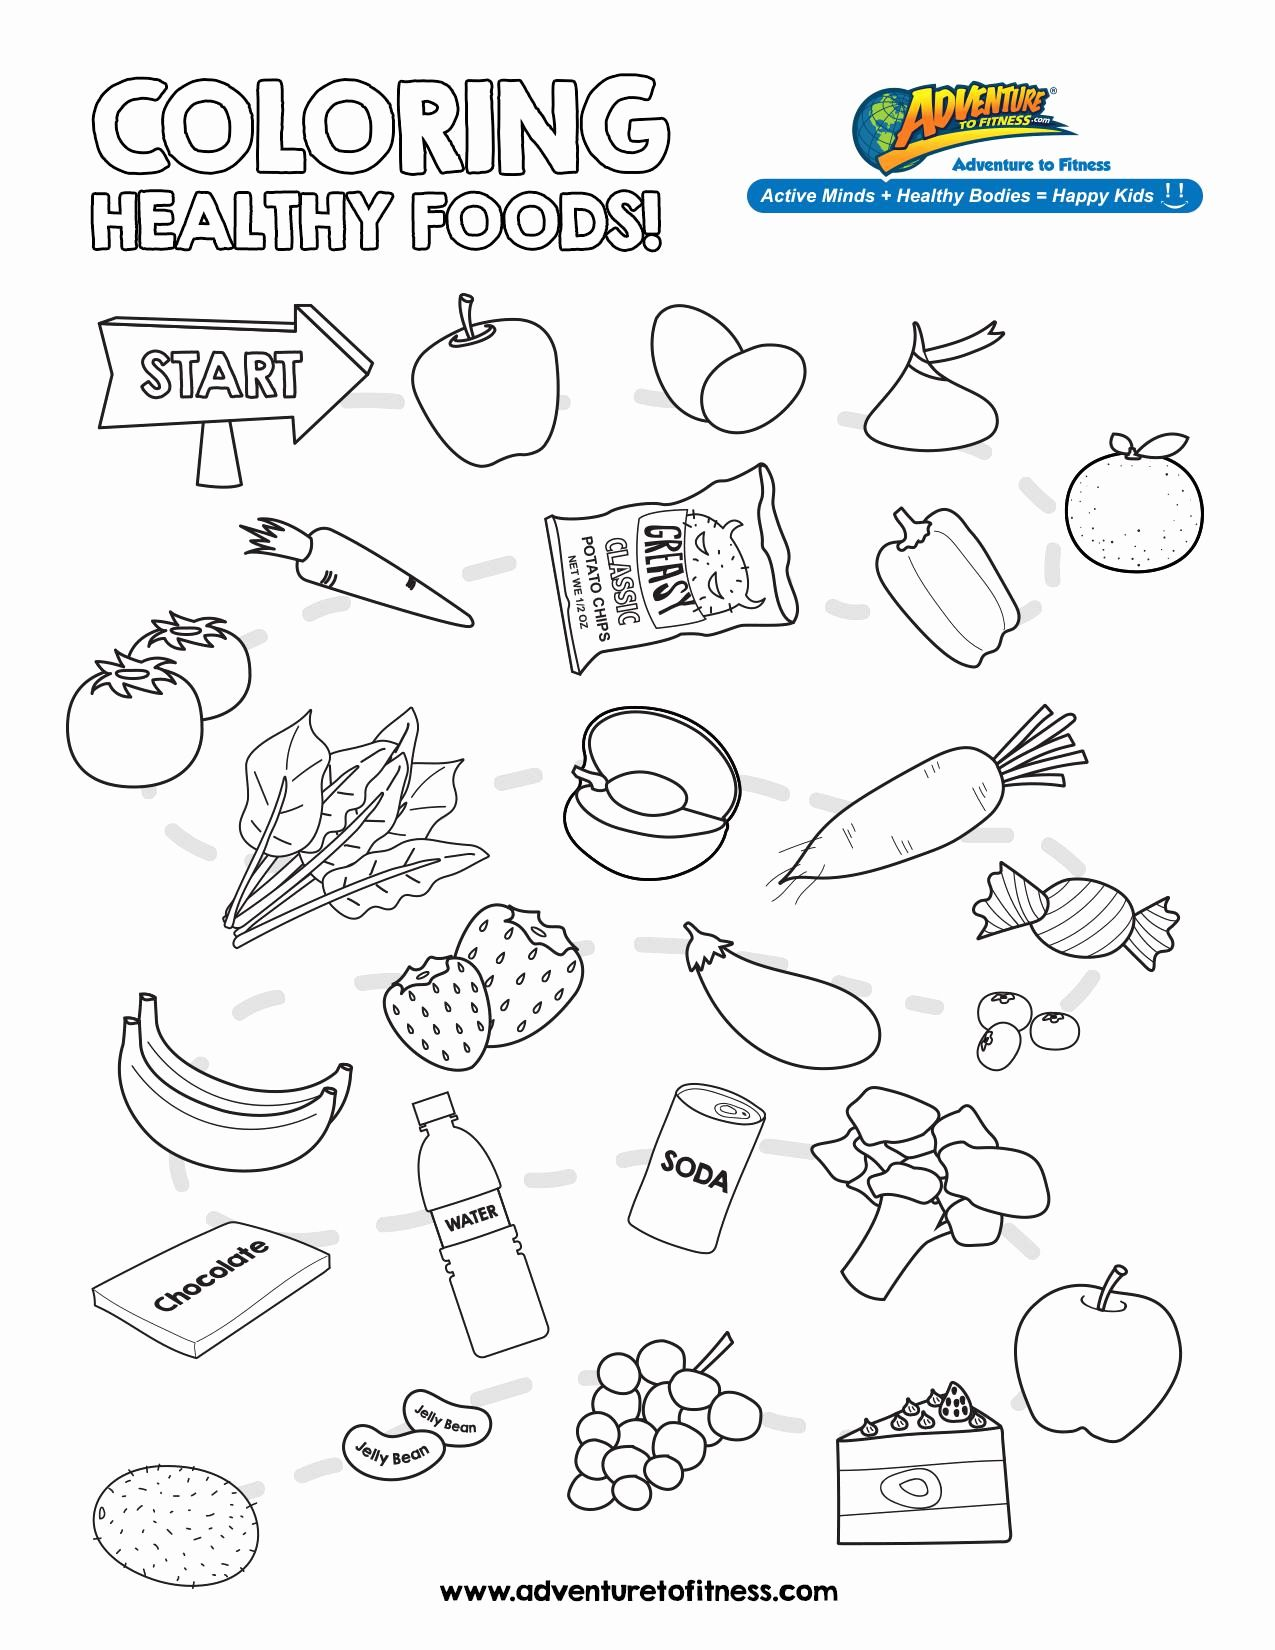 Coloring Pages For Kids Showing Healthy Food Vs Non